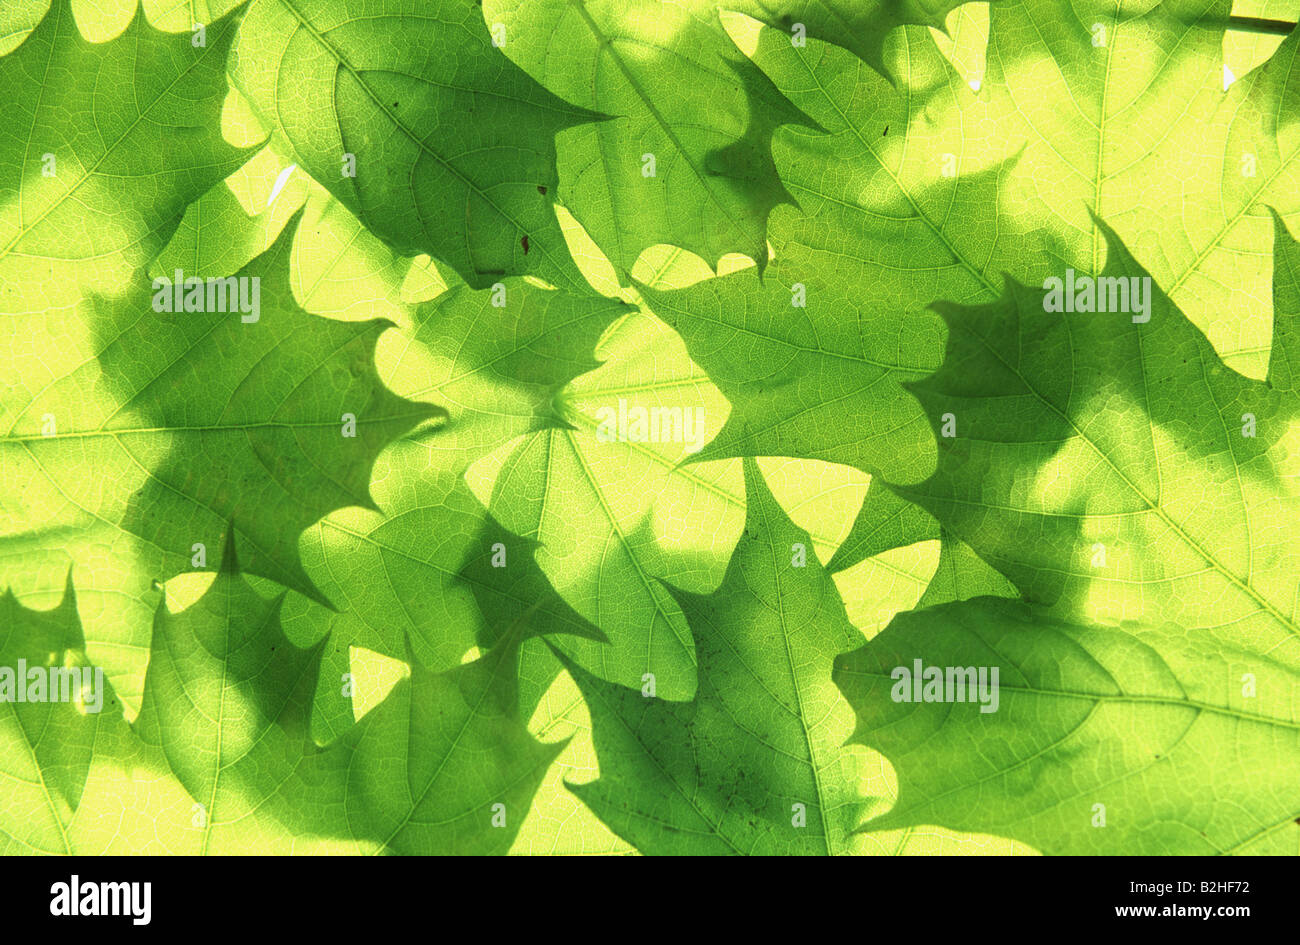 maple tree acer afterimage backcloth background image backdrop close up pattern patterns Stock Photo